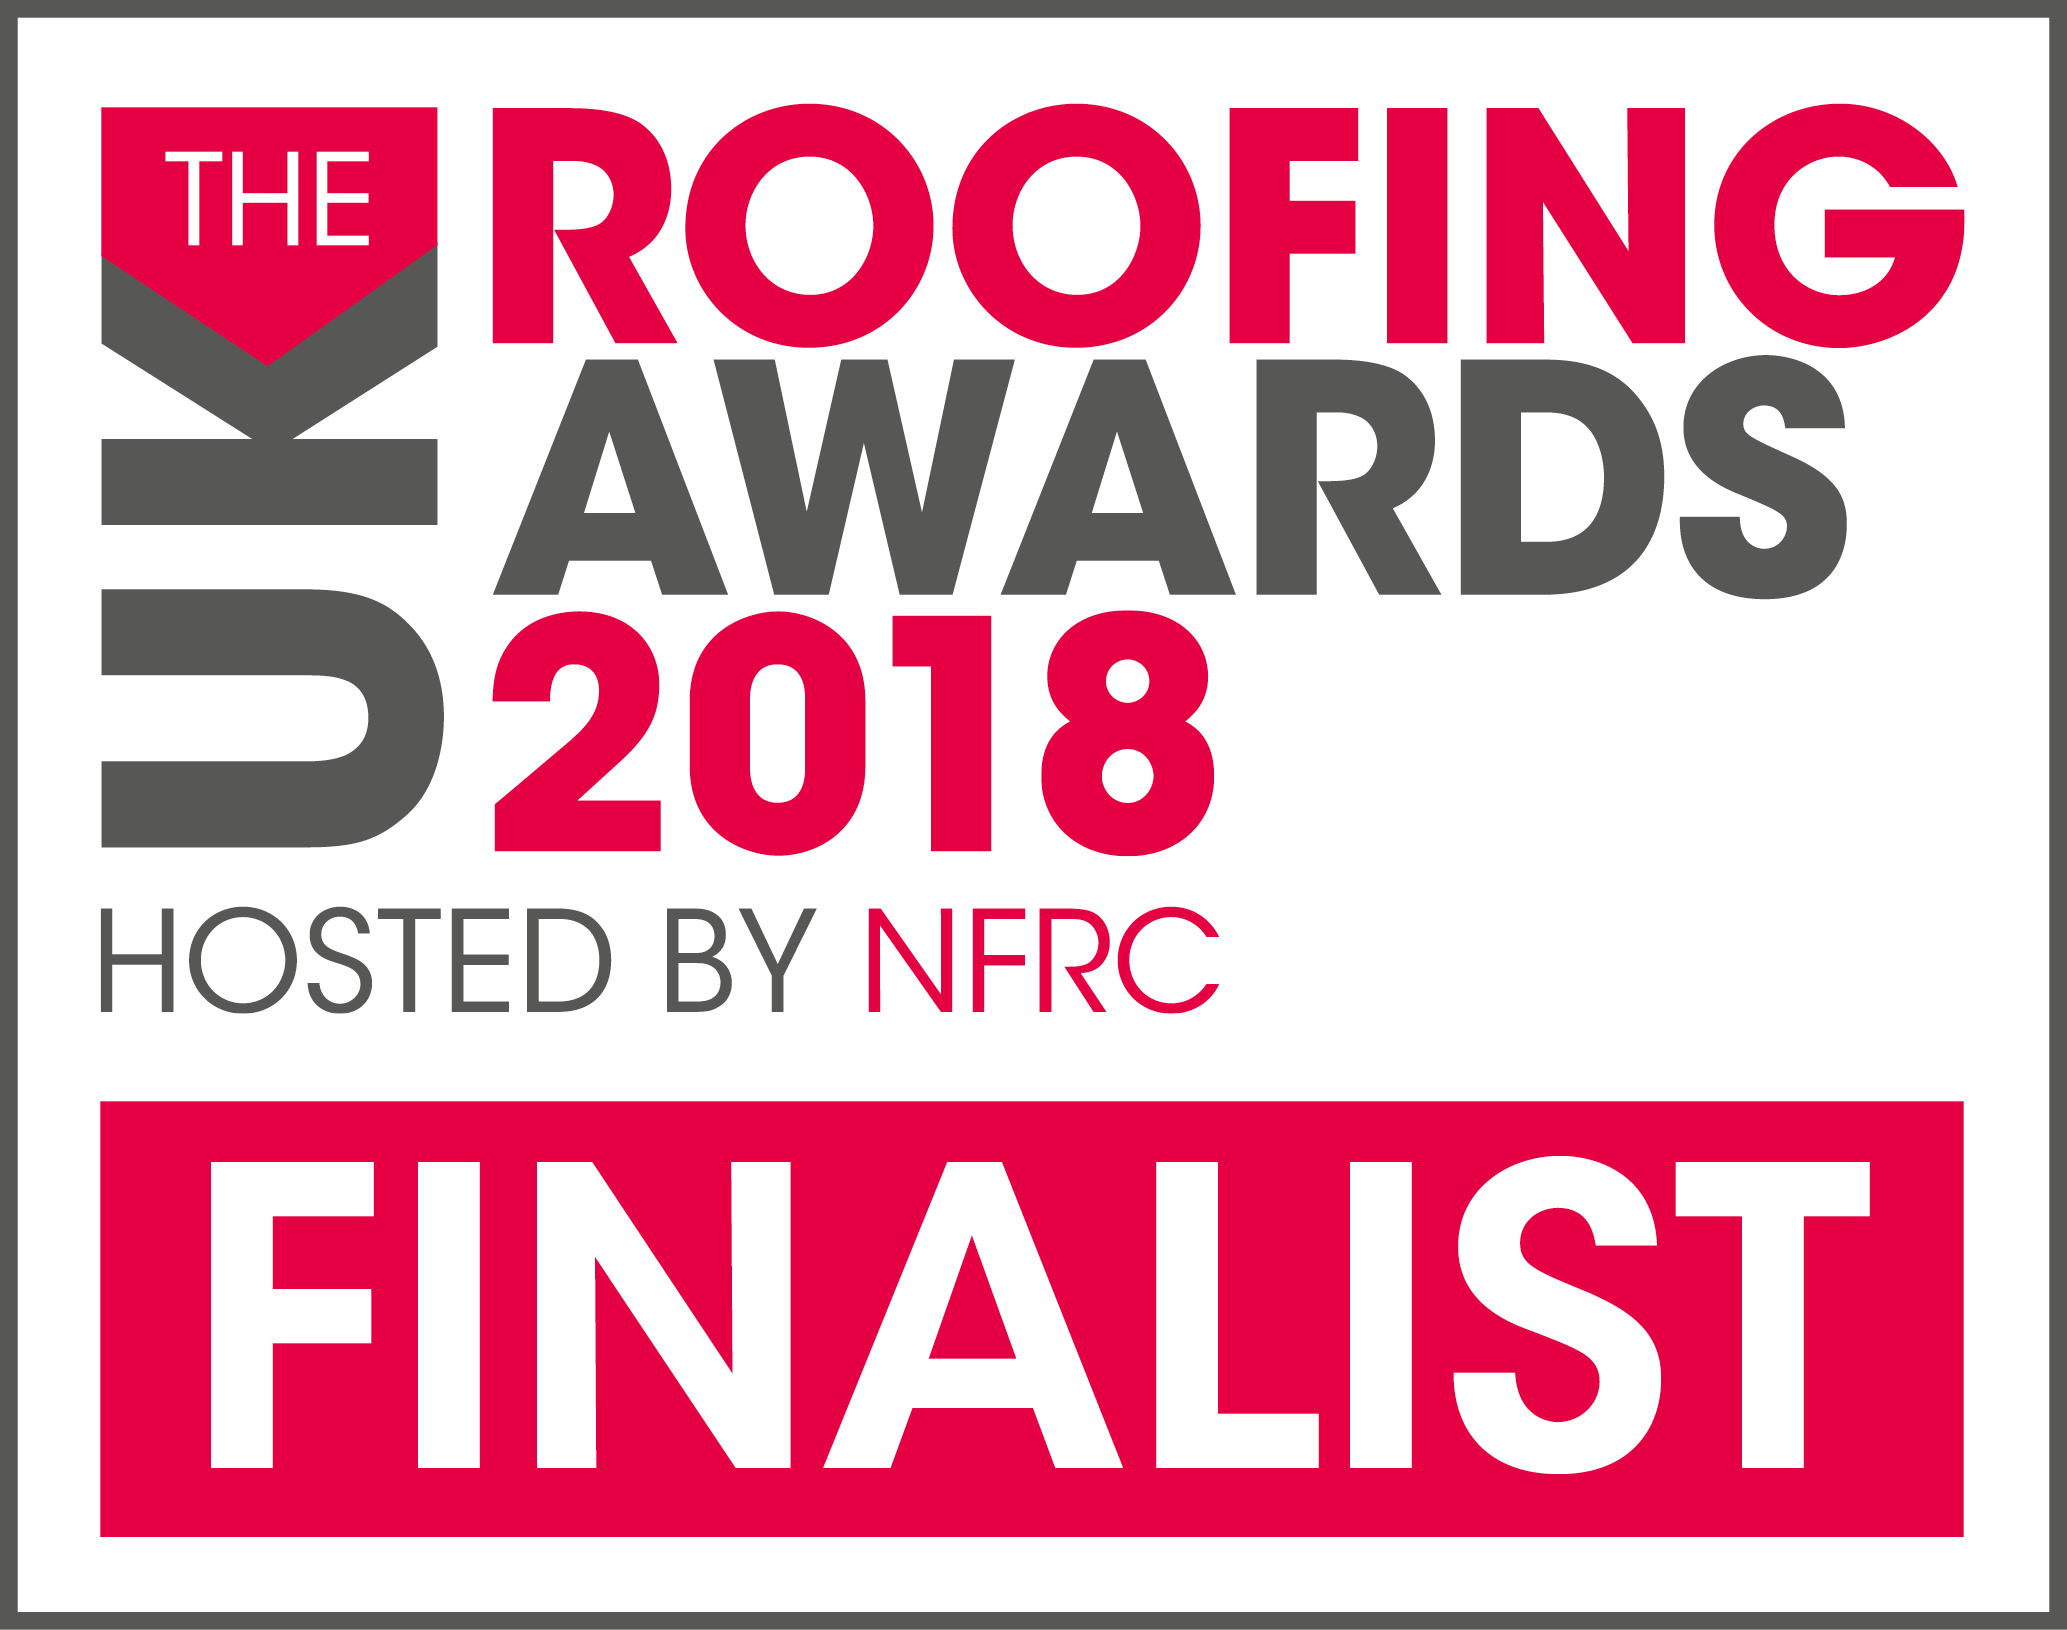 National Roofing Awards 2018